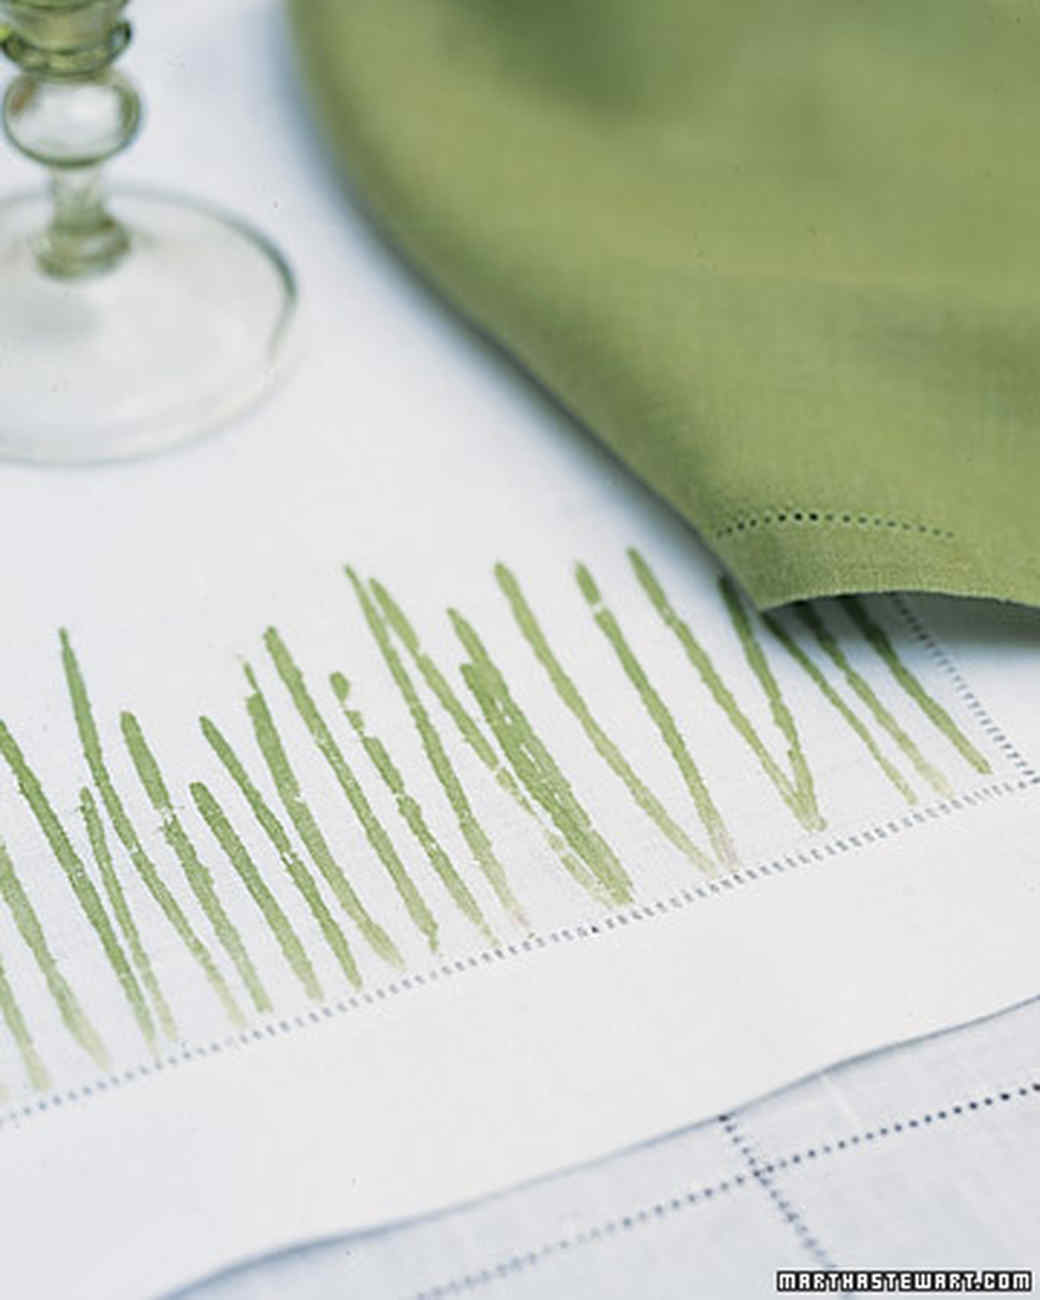 Pounded-Grass Place Mats